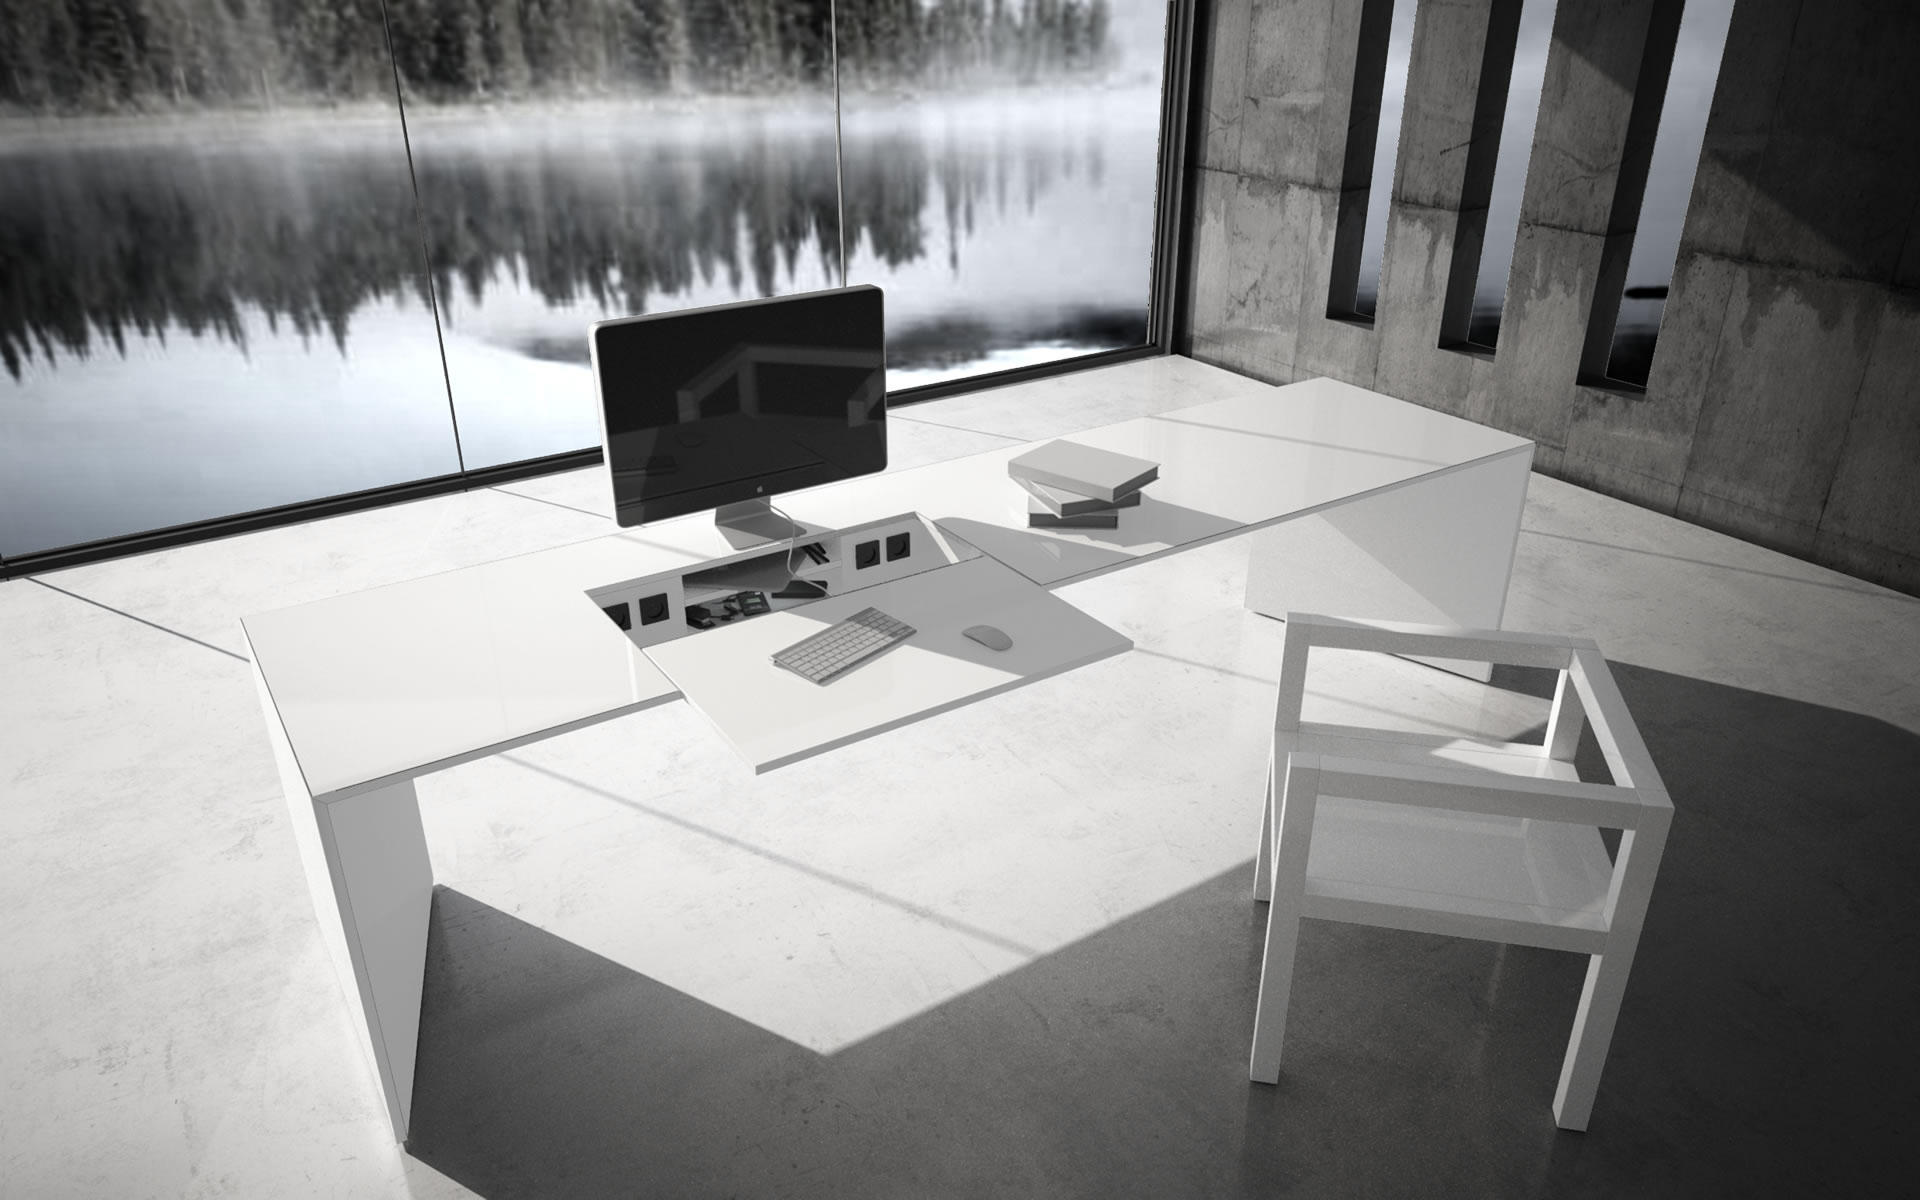 Eckschreibtisch weiß design  COMMENTOR DESK - AV tables from Rechteck | Architonic